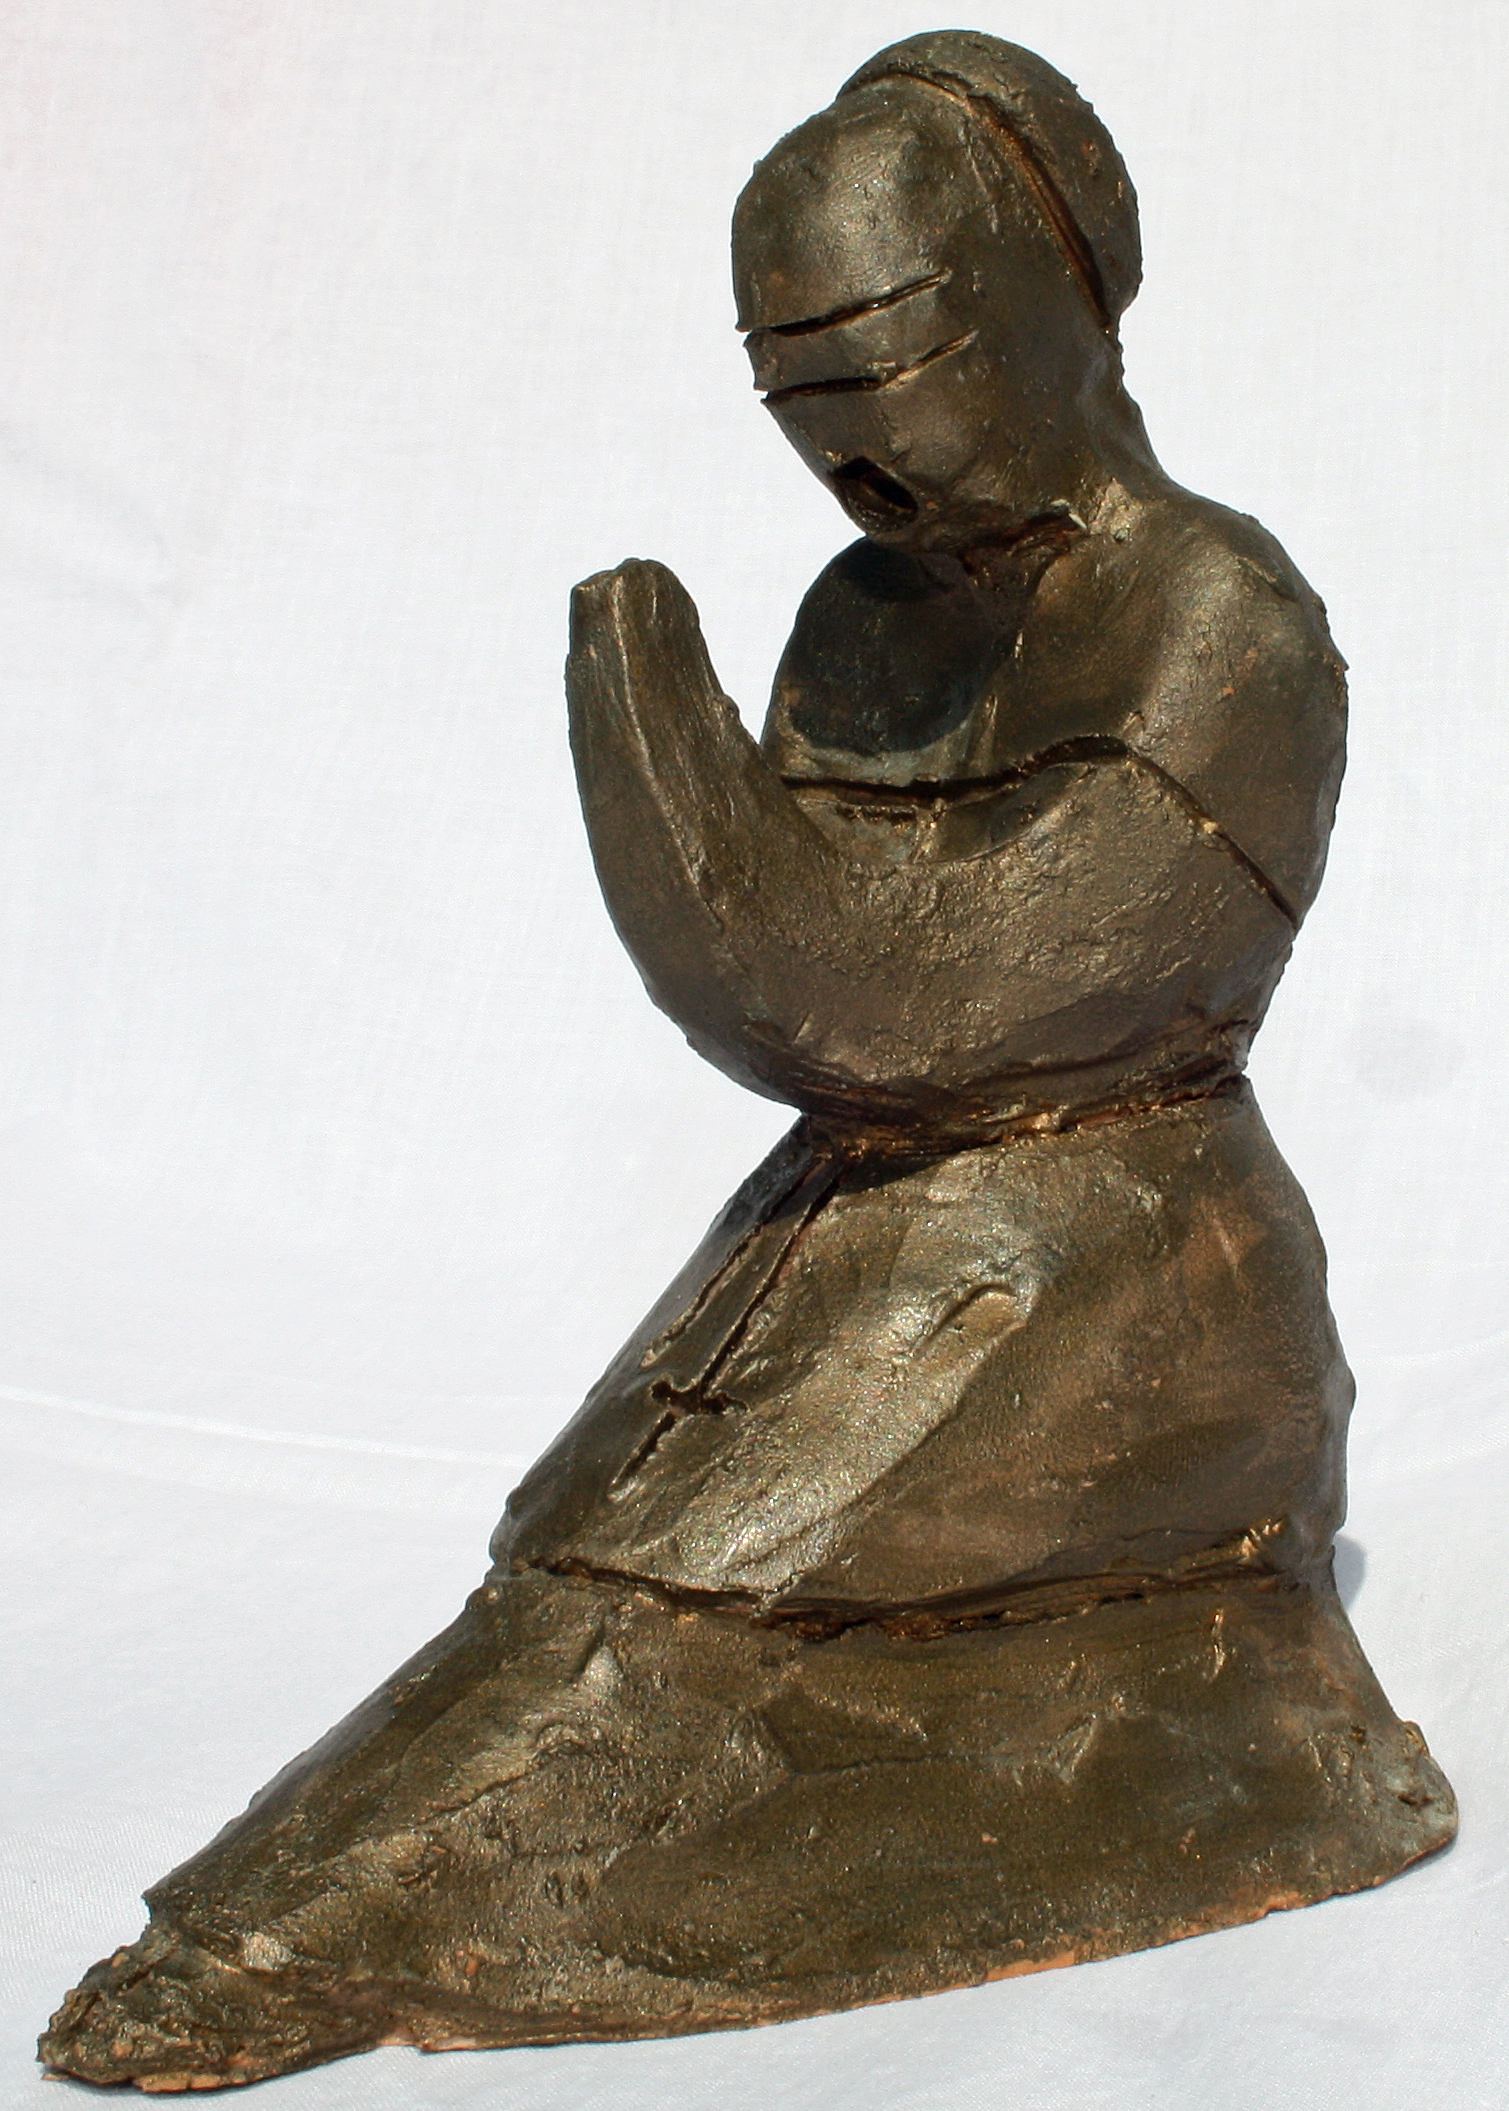 Vescovo in contempla-zione (Bishop in contemplation), 1997, bozzetto in terracotta patinata (Terracotta sketch coated), Pasquale Mastrogiacomo, Acerno (SA).